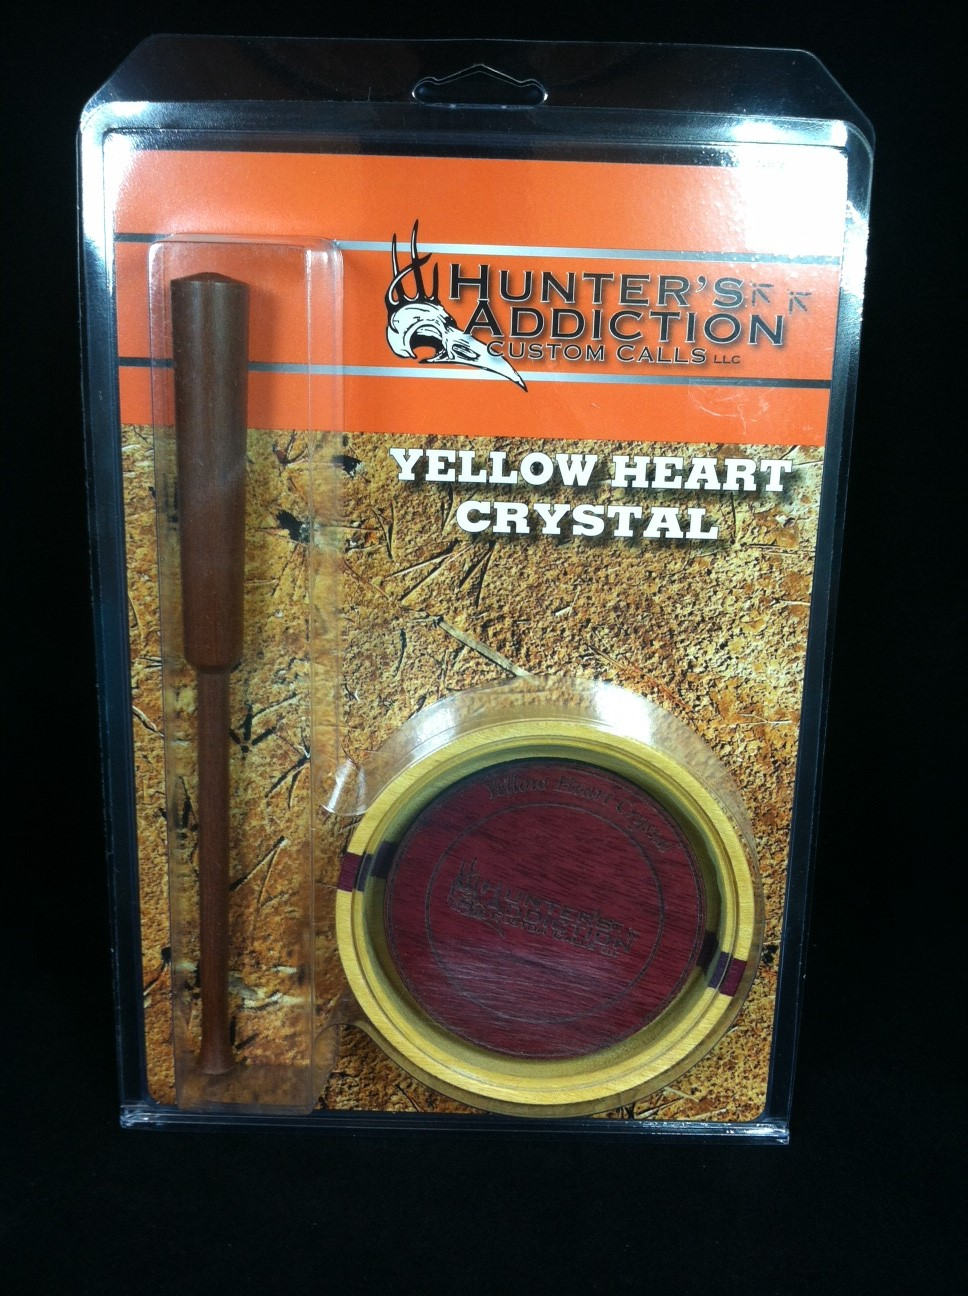 hunter's addiction yellow heart crystal - custom turkey call